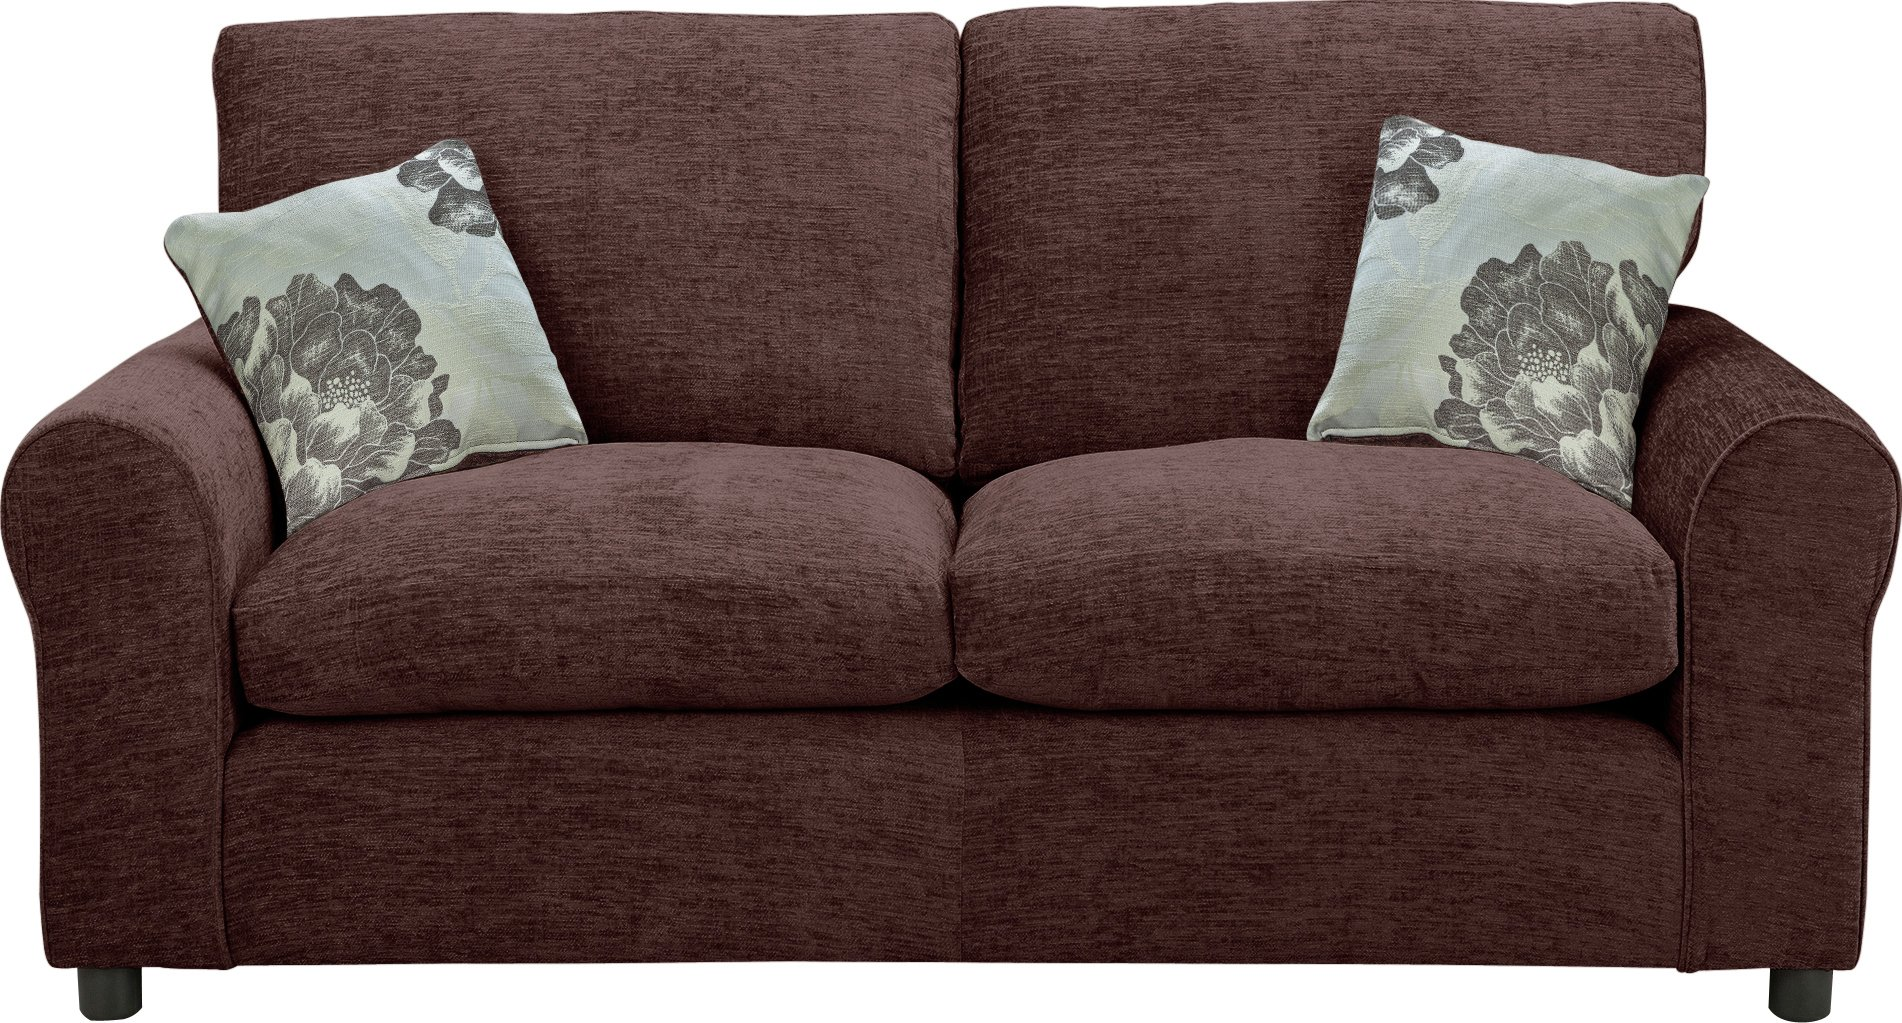 argos ava fabric sofa review sleeper alternatives beds homedesignview co home tessa 2 seater bed chocolate at uk